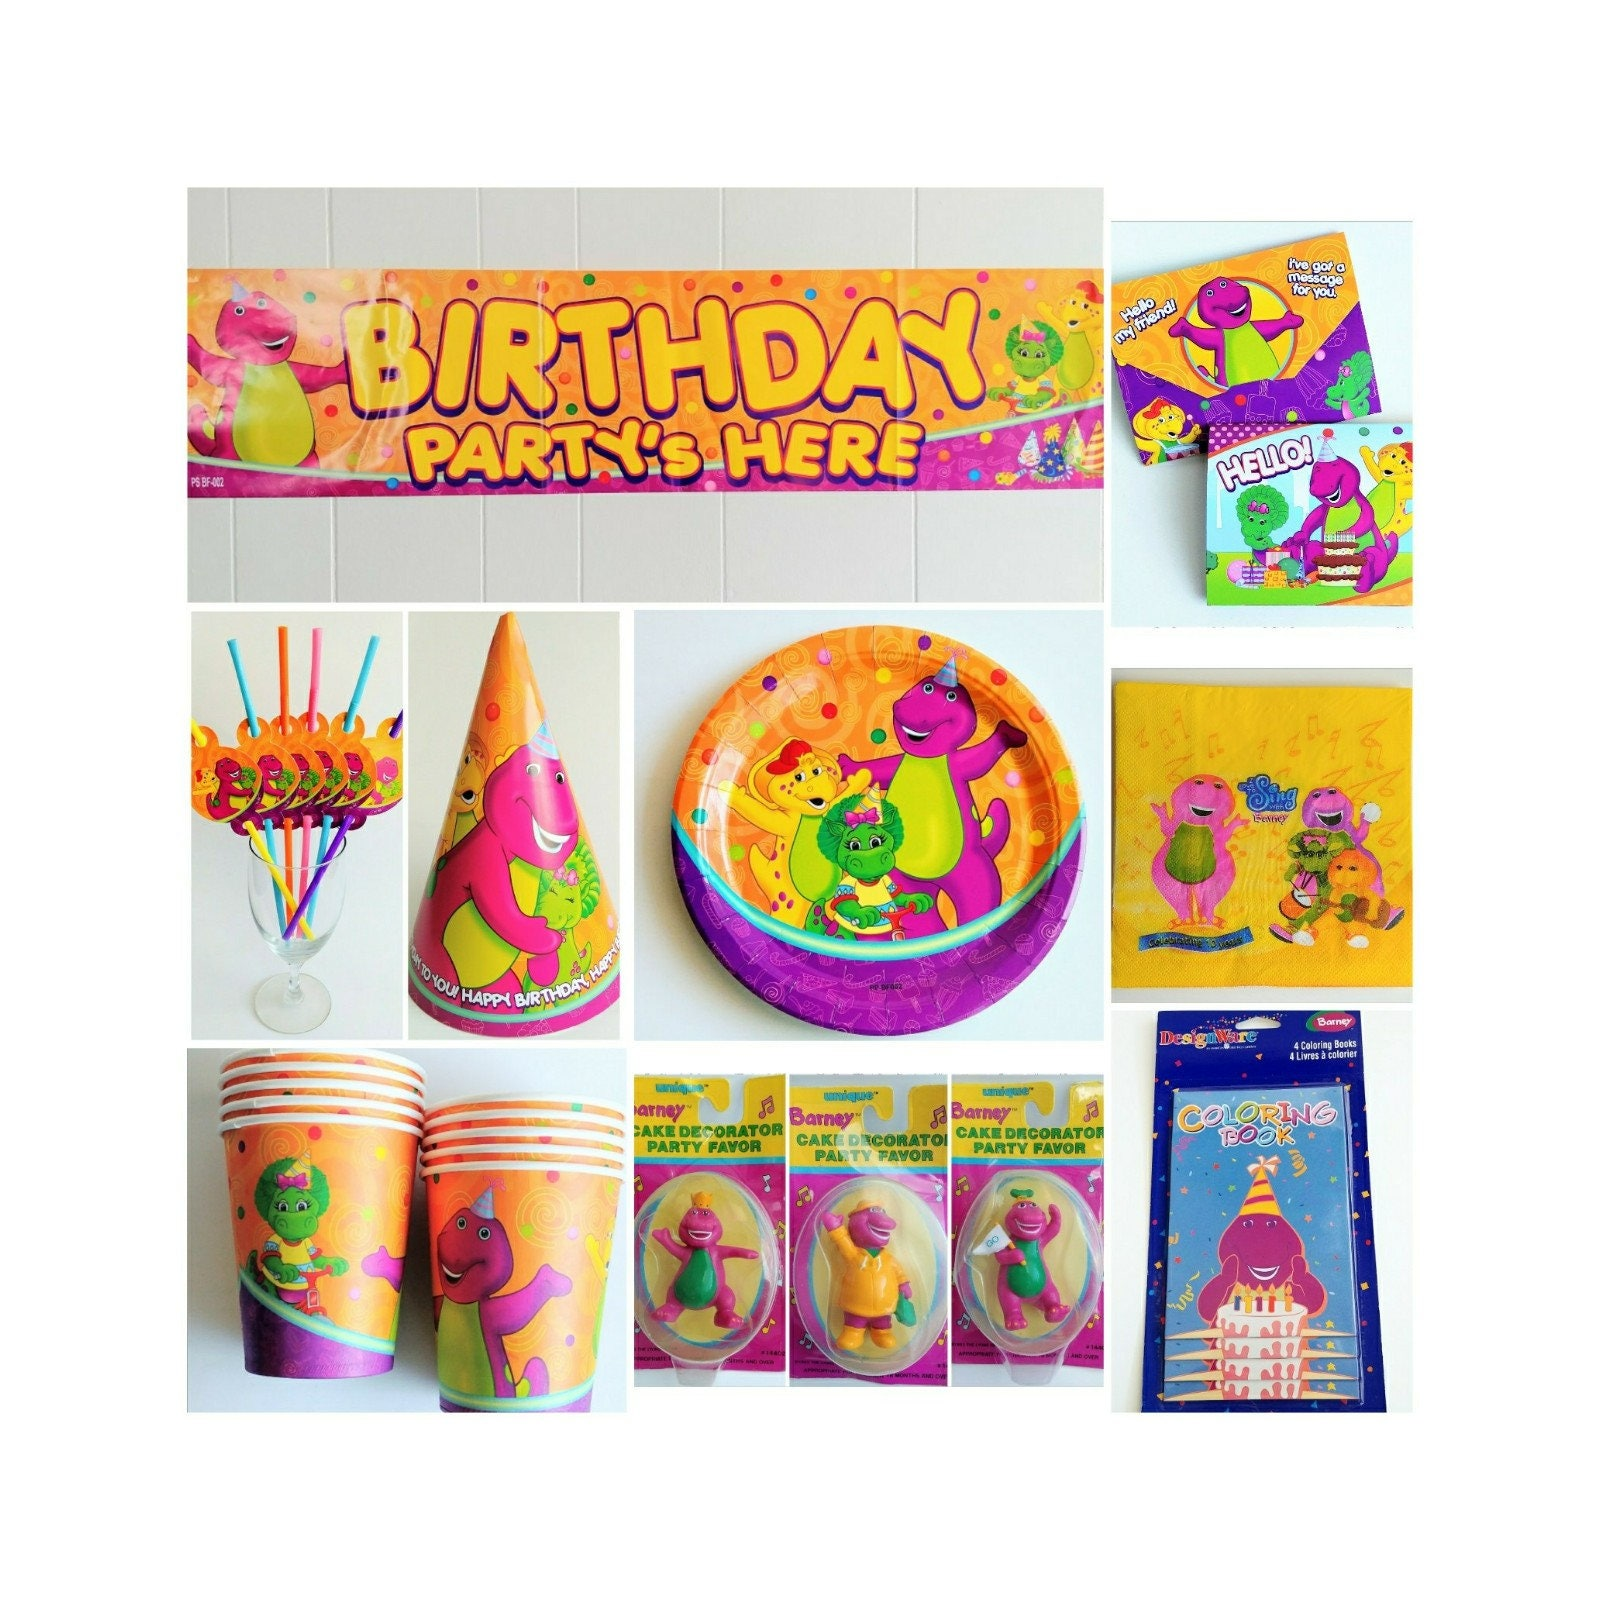 Barney birthday party supplies cups plates invitations banner description barney party supplies monicamarmolfo Images